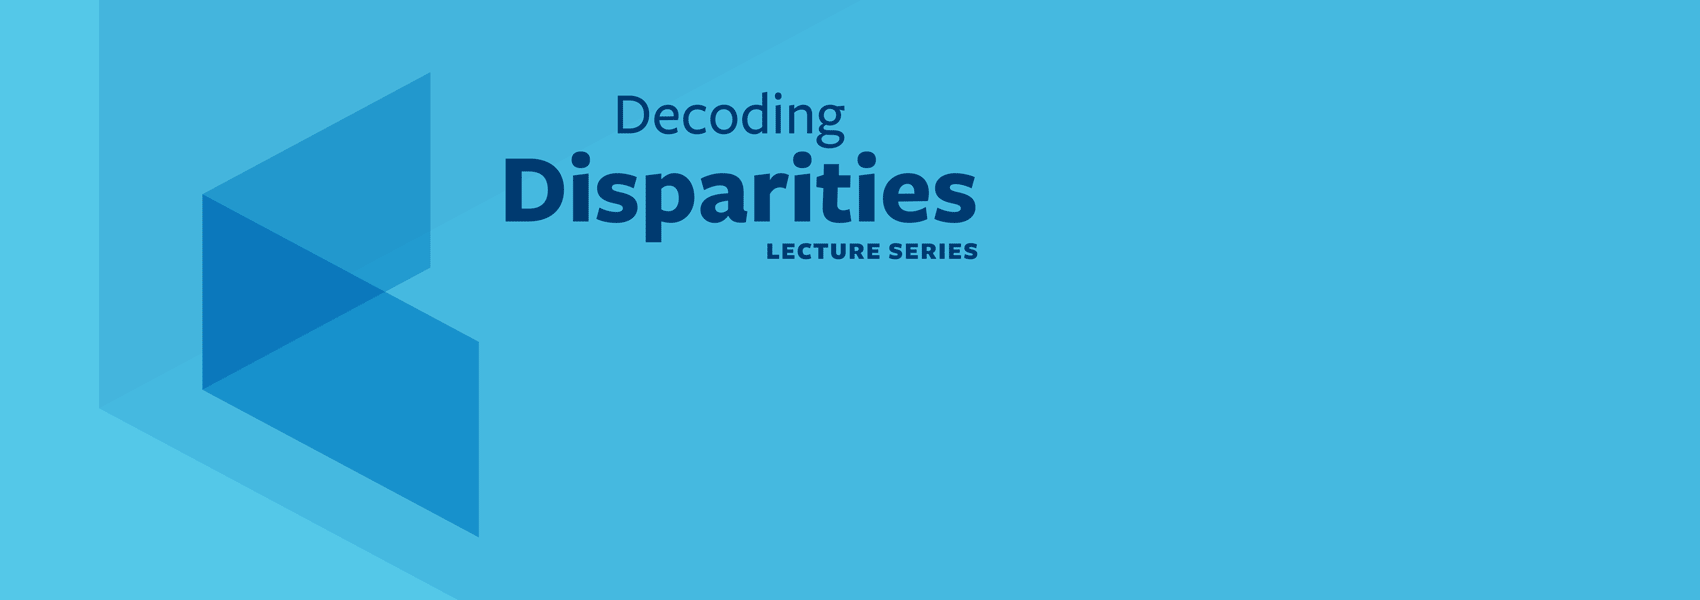 Decoding Disparities